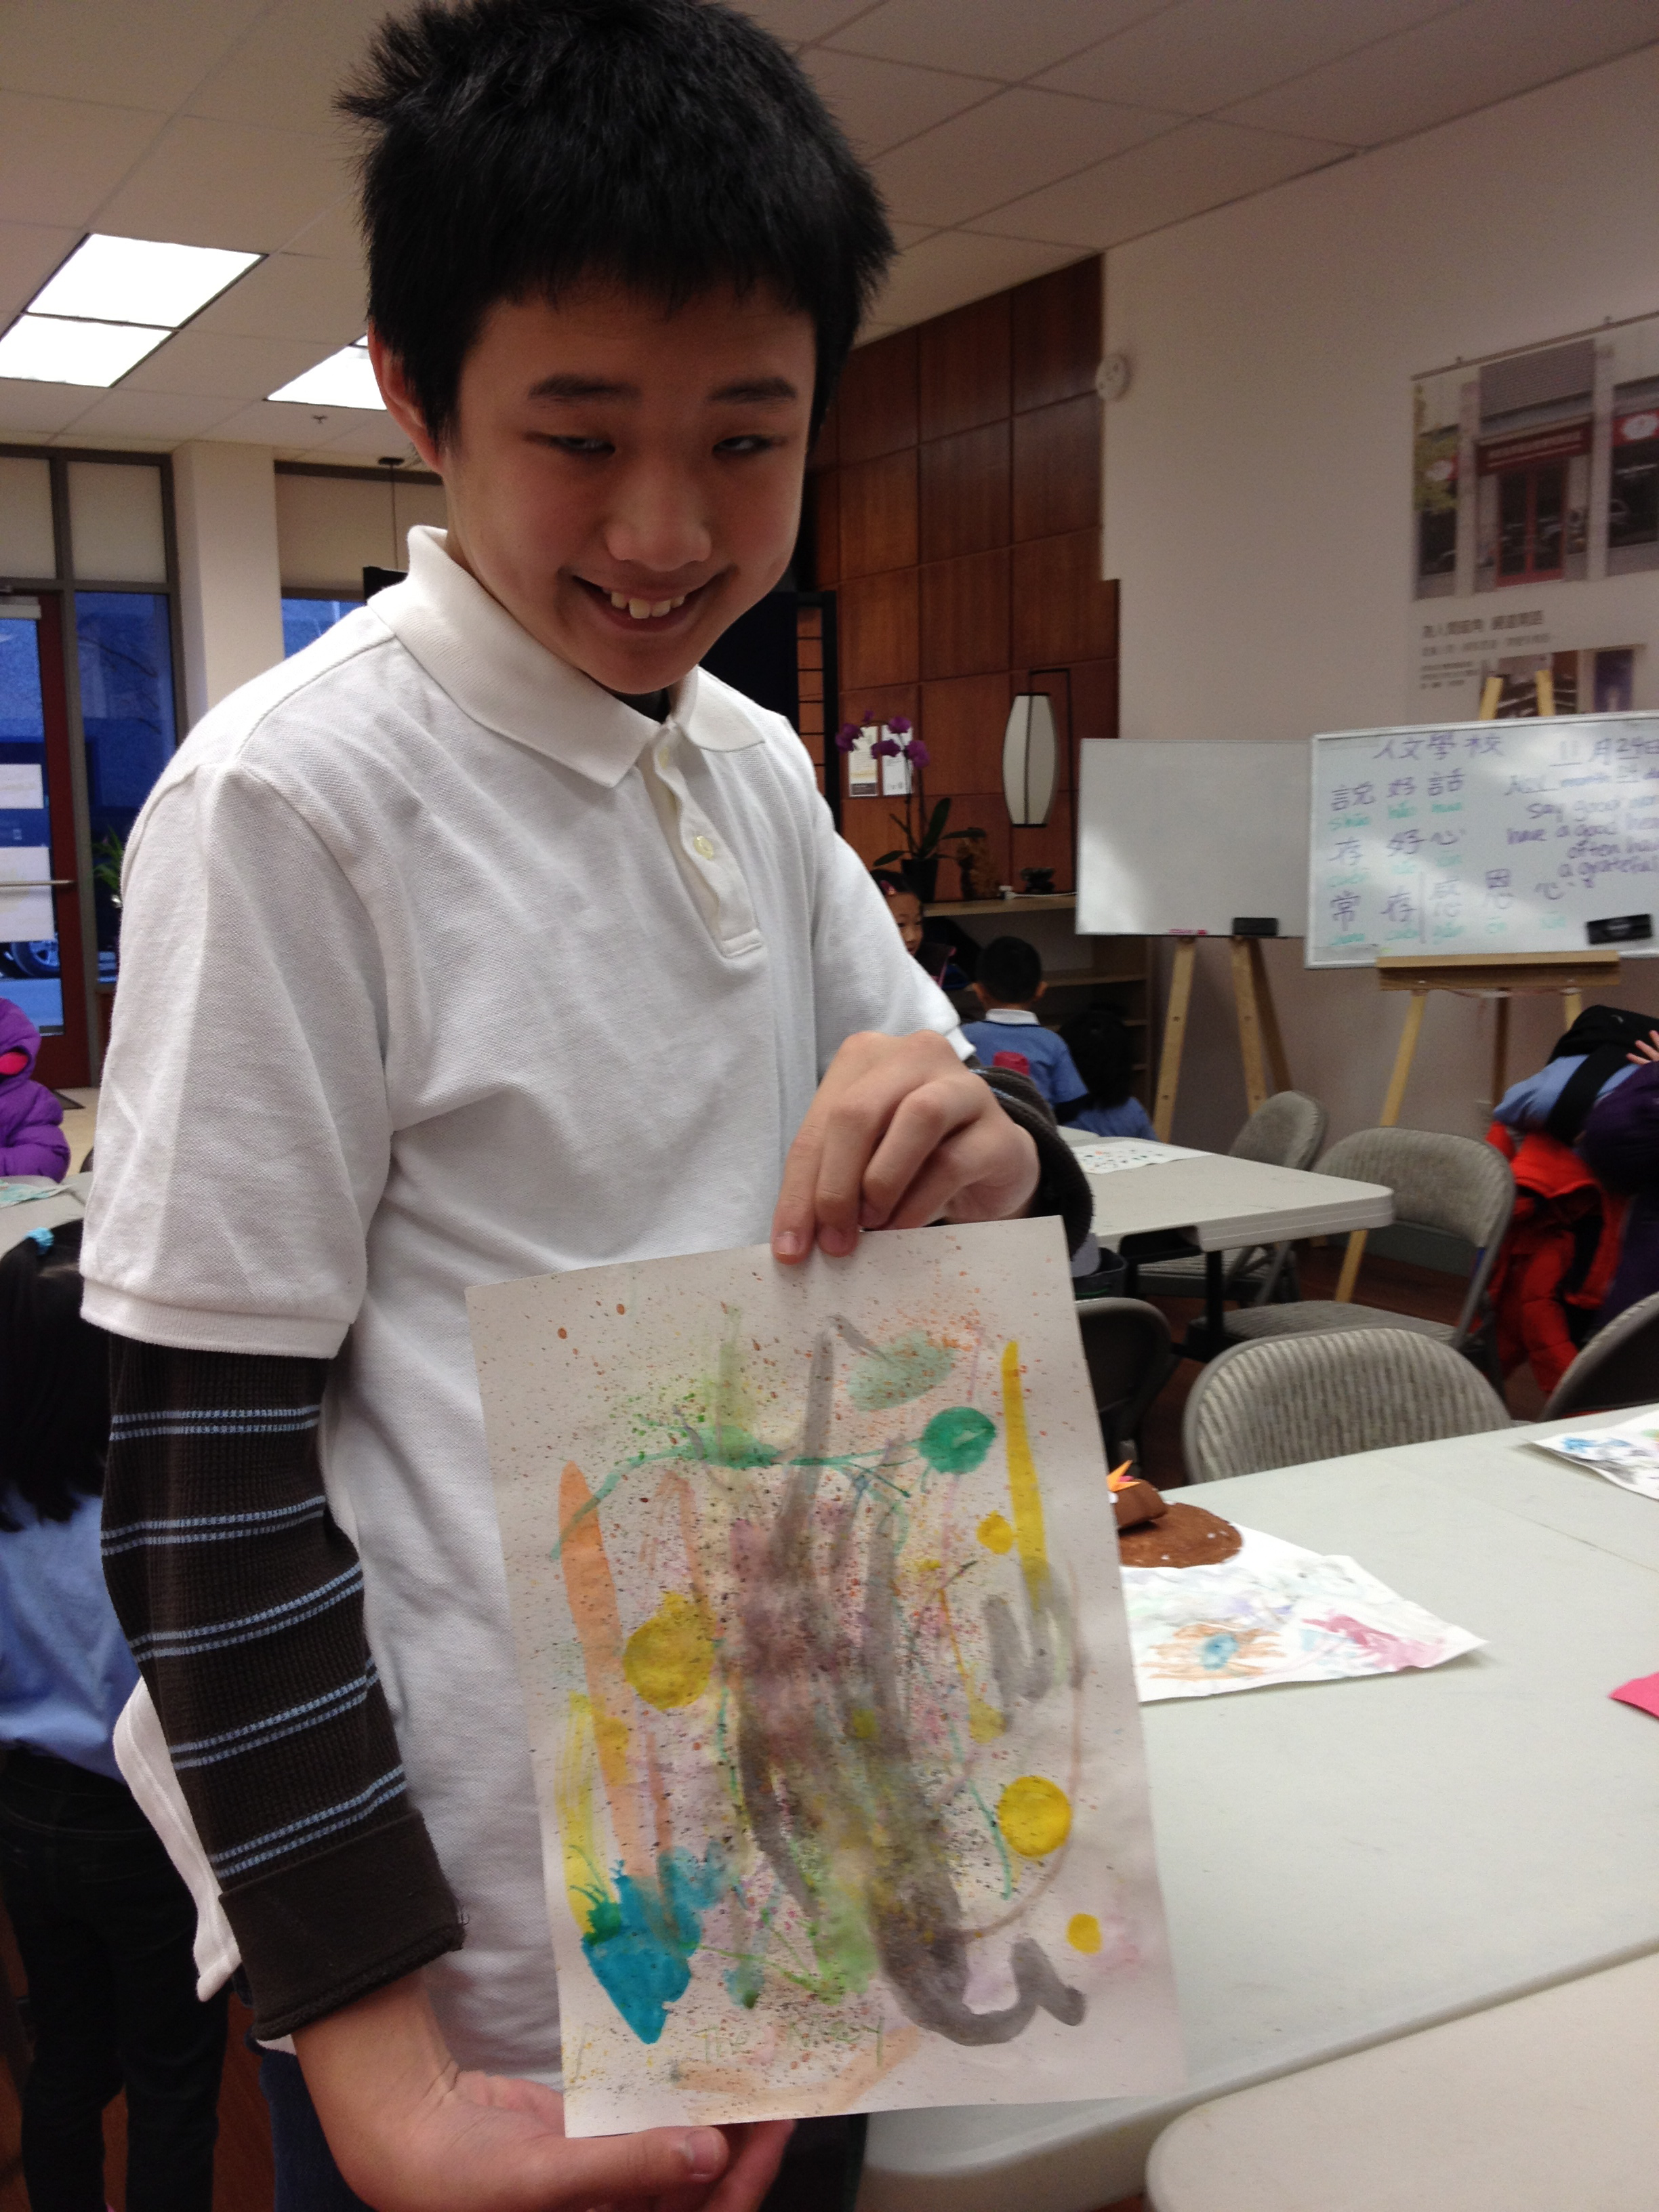 Compassion Through Art in Chinatown